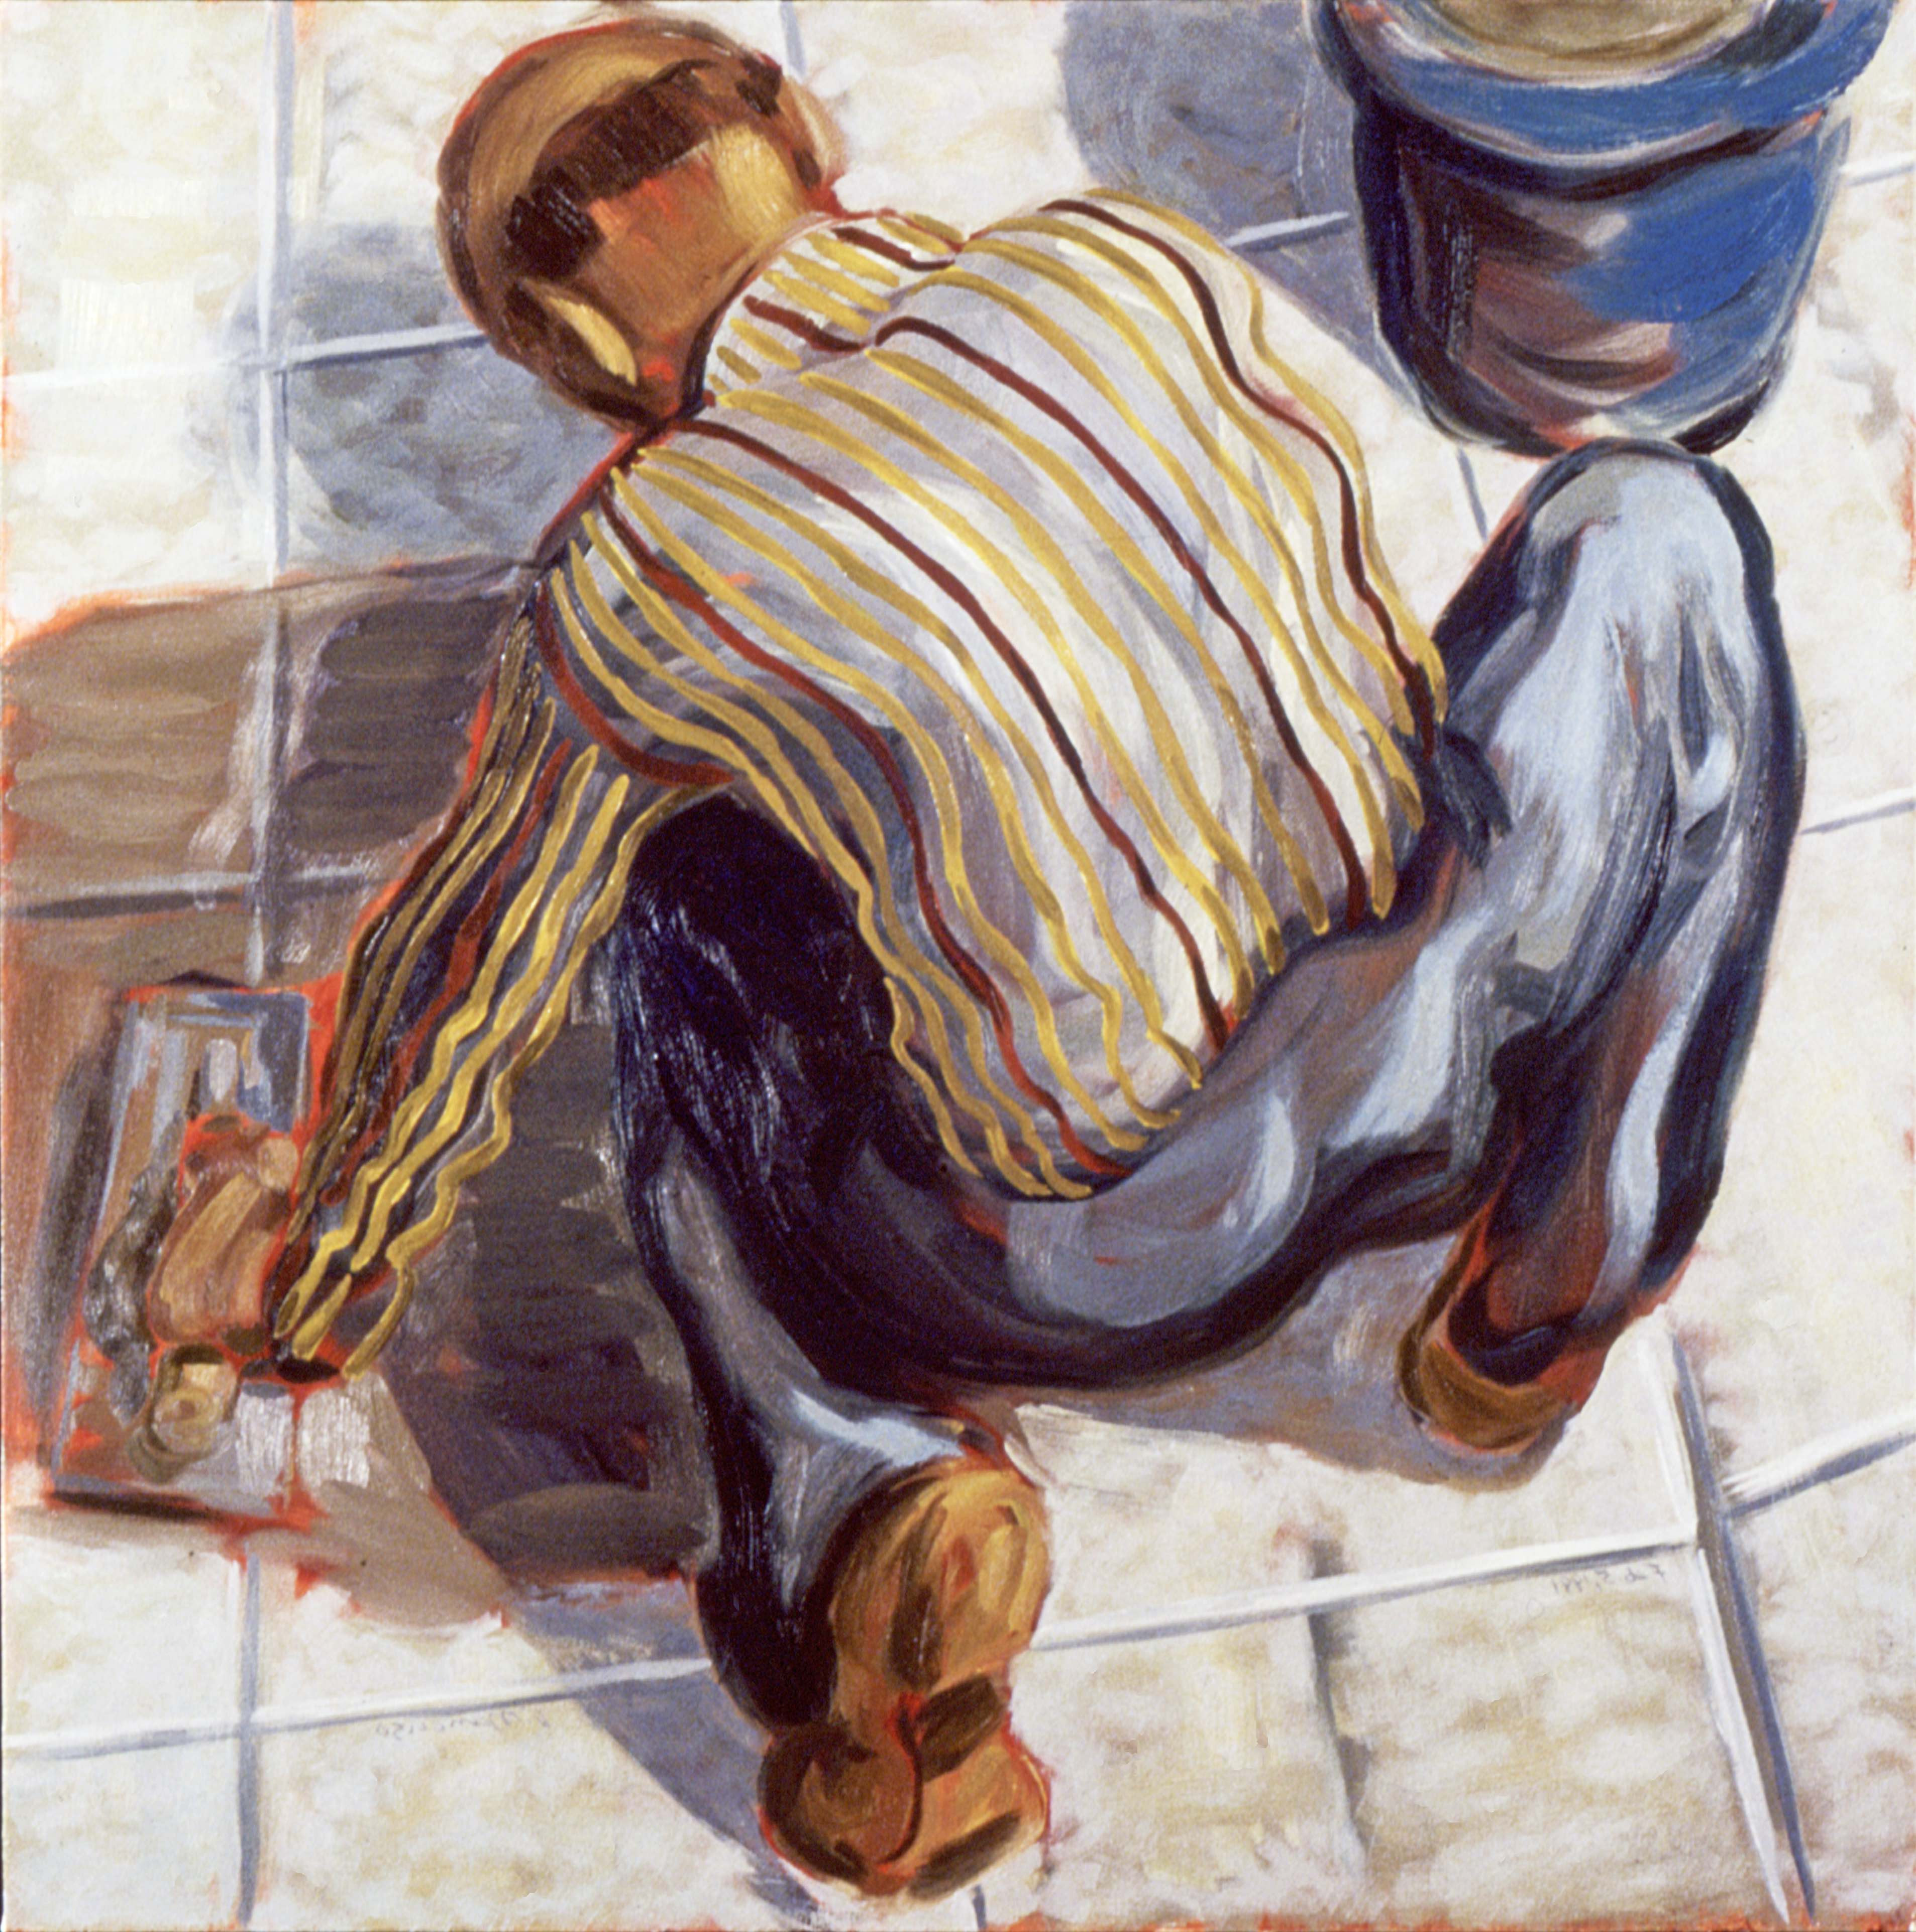 WORK IS THE CONDITION FOR EQUALITY #1, painted by Vince Mancuso in 1991, oil on canvas 4x5 feet